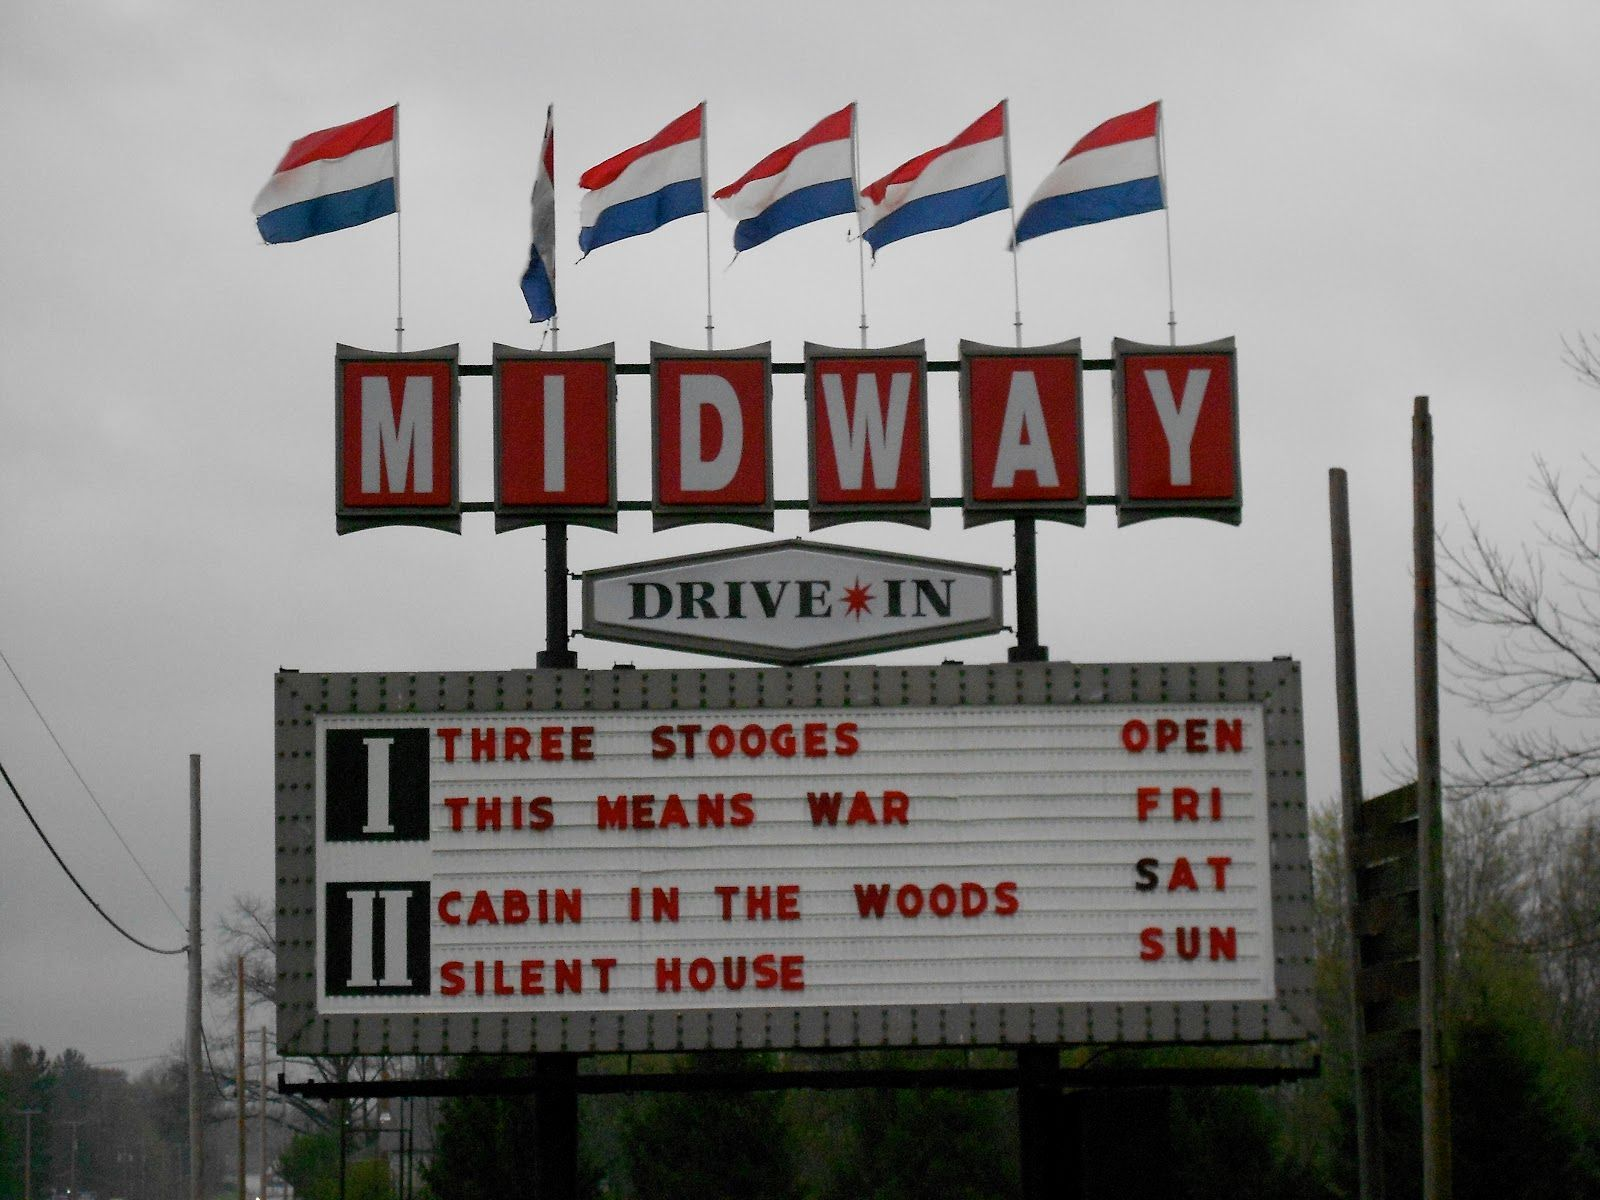 I drivein theaters midway twin drivein theatre with